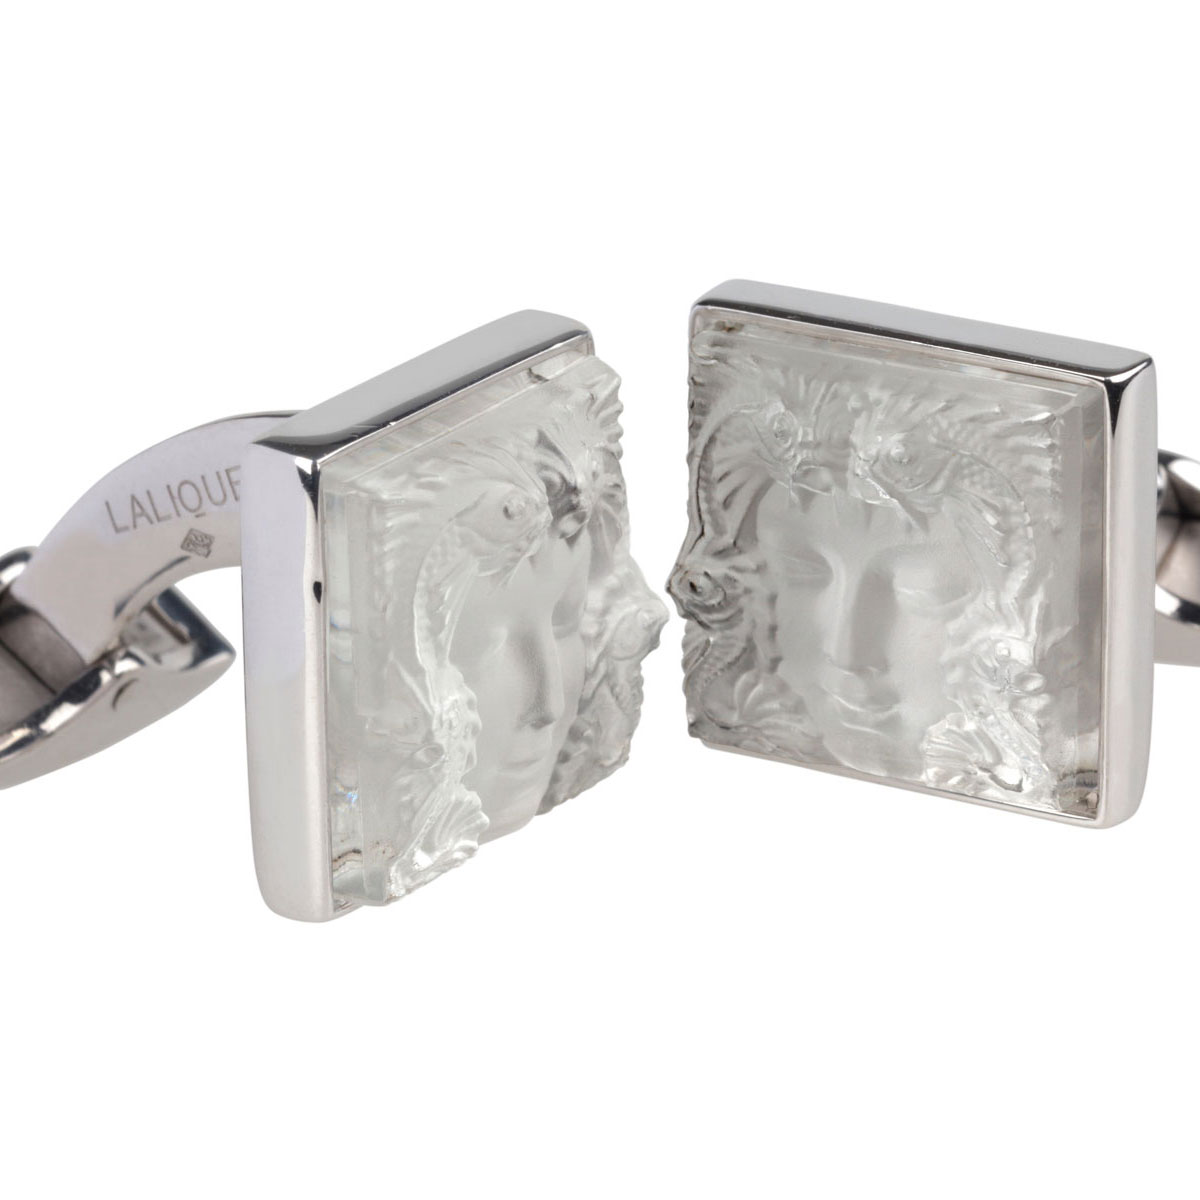 Lalique Crystal, Arethuse Cufflinks Pair, Clear